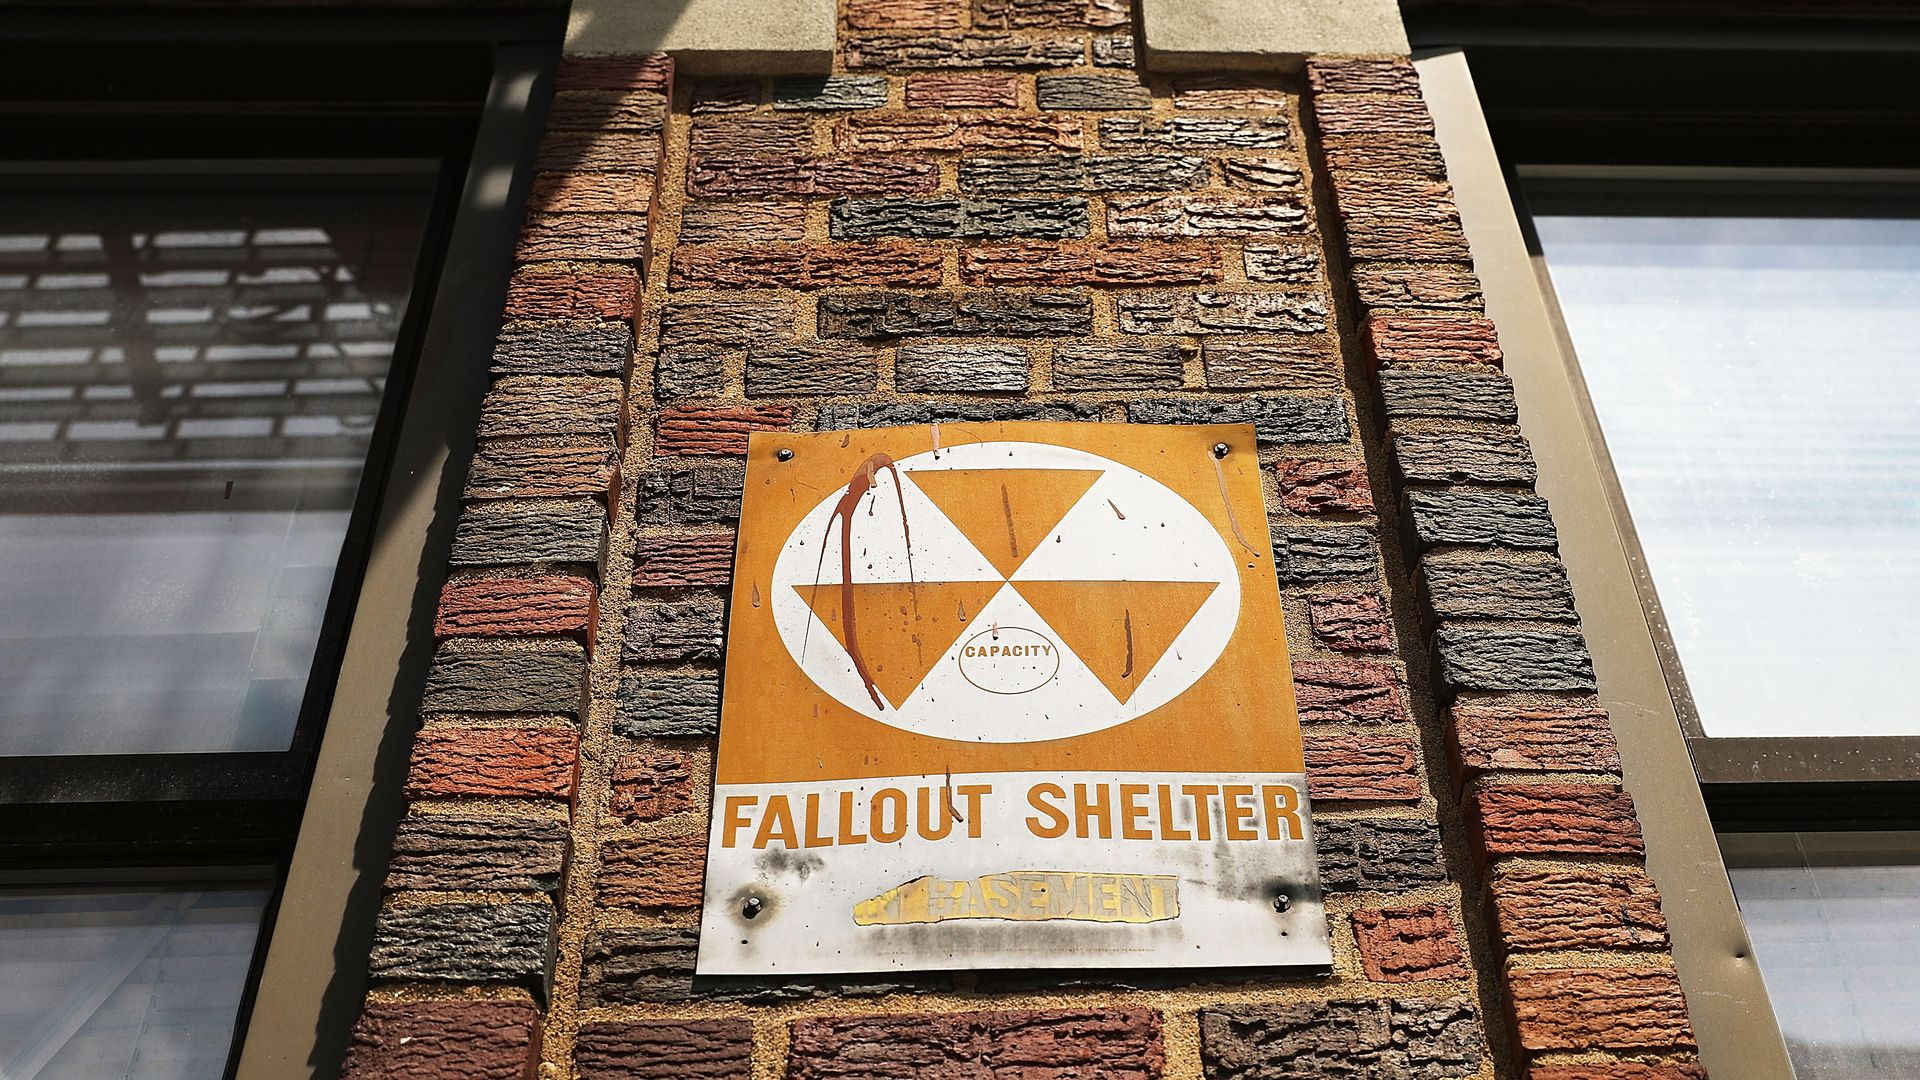 A leftover fallout shelter sign in New York City from the Cold War.